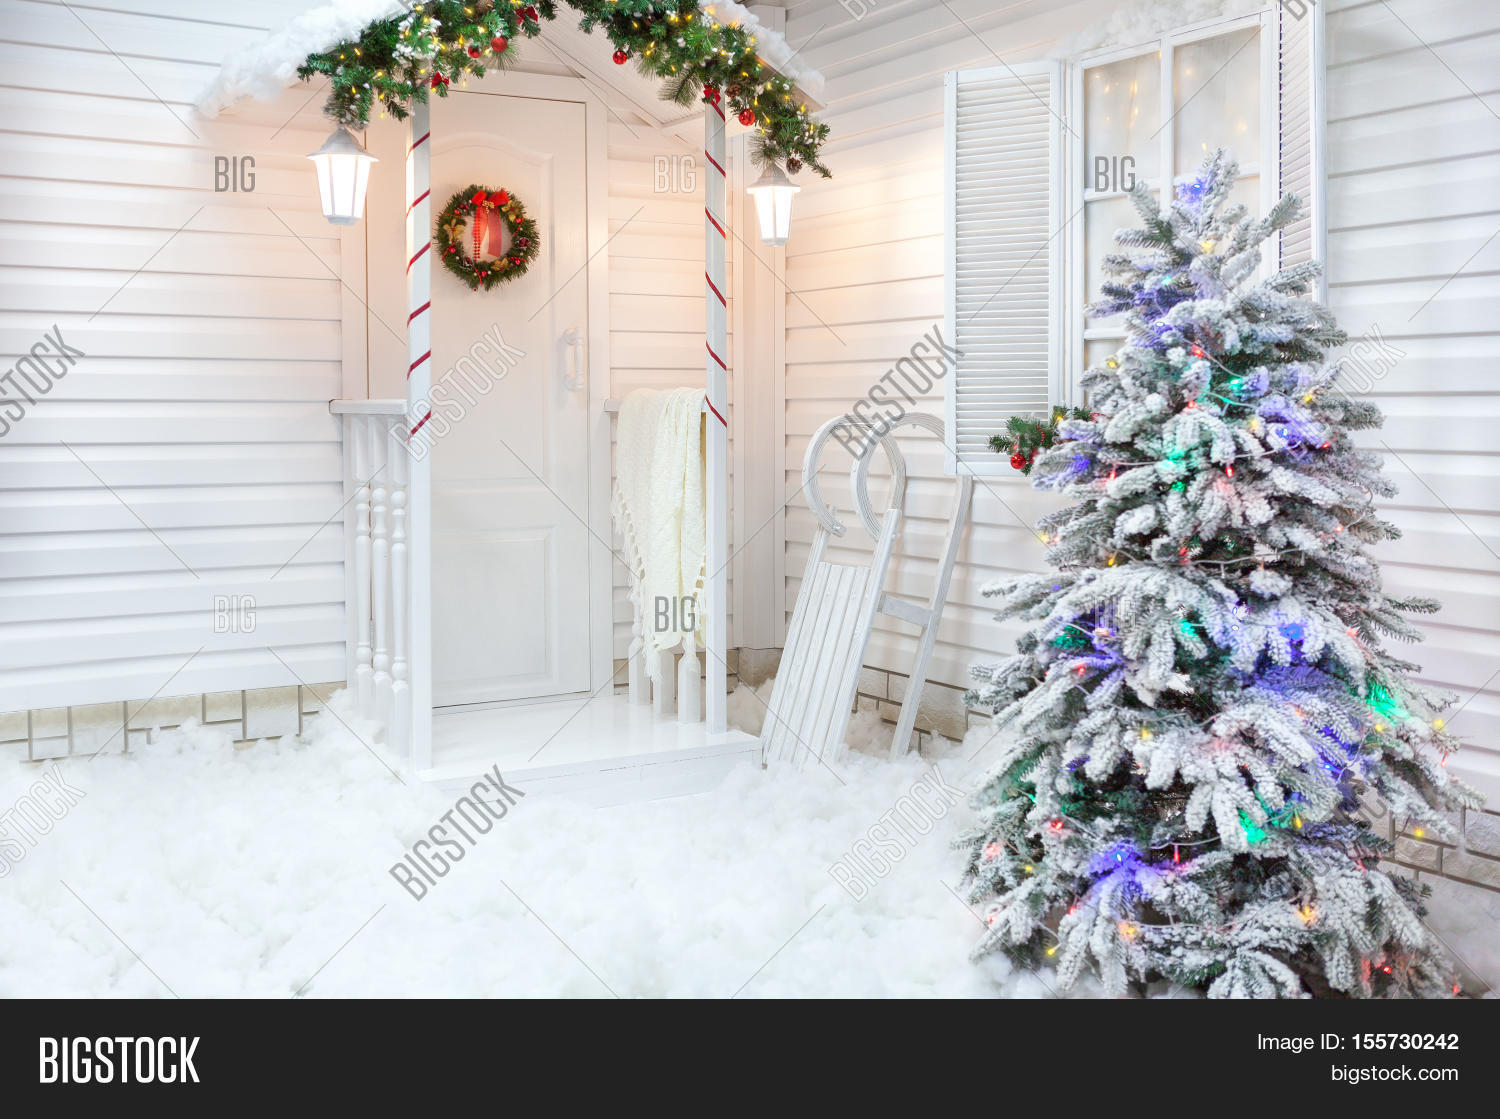 Winter exterior country house image photo bigstock for American style christmas decorations